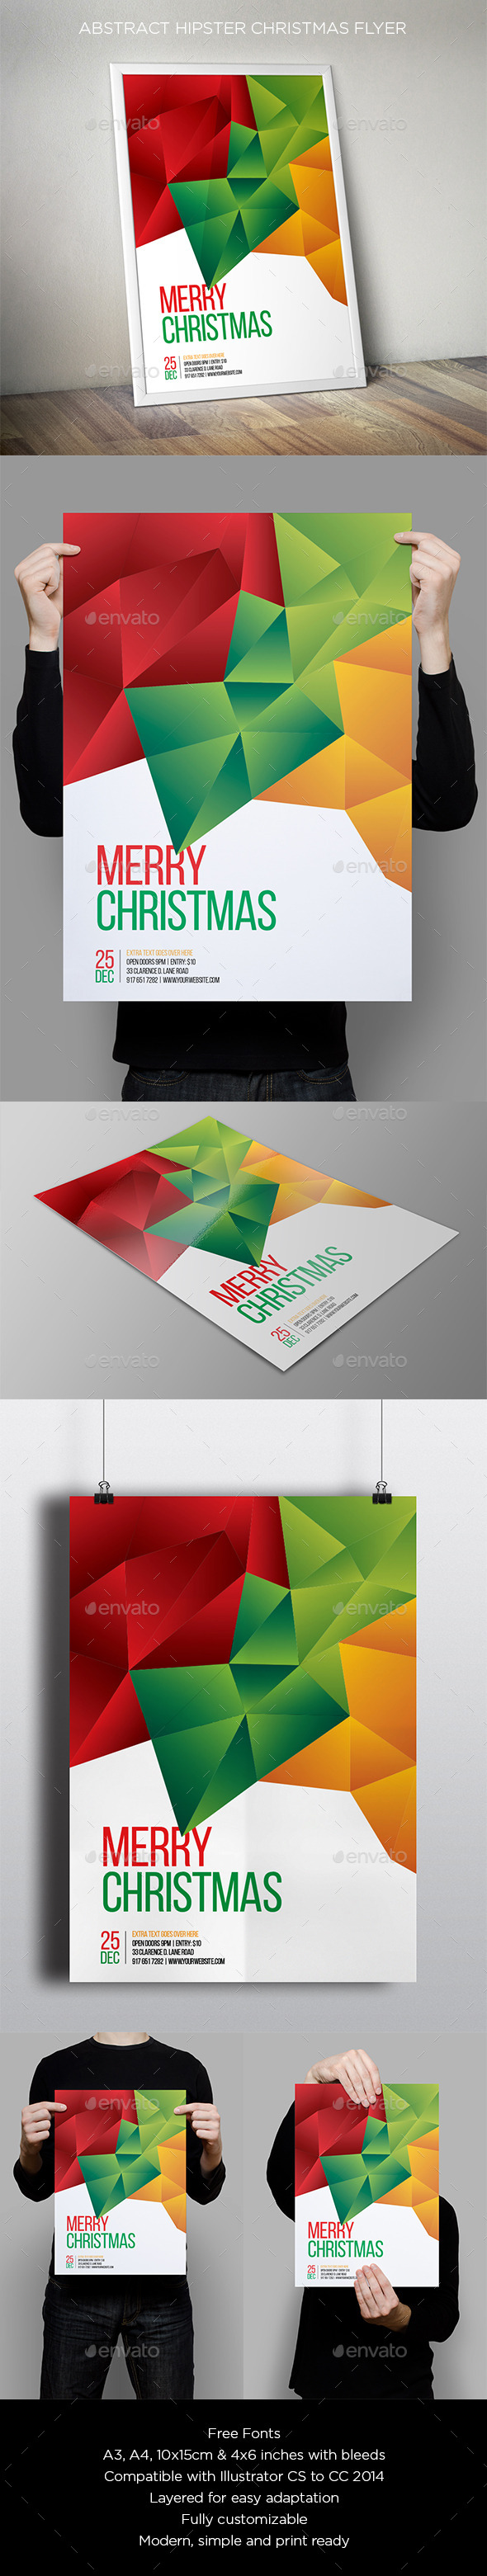 GraphicRiver Abstract Christmas Flyer 9646955